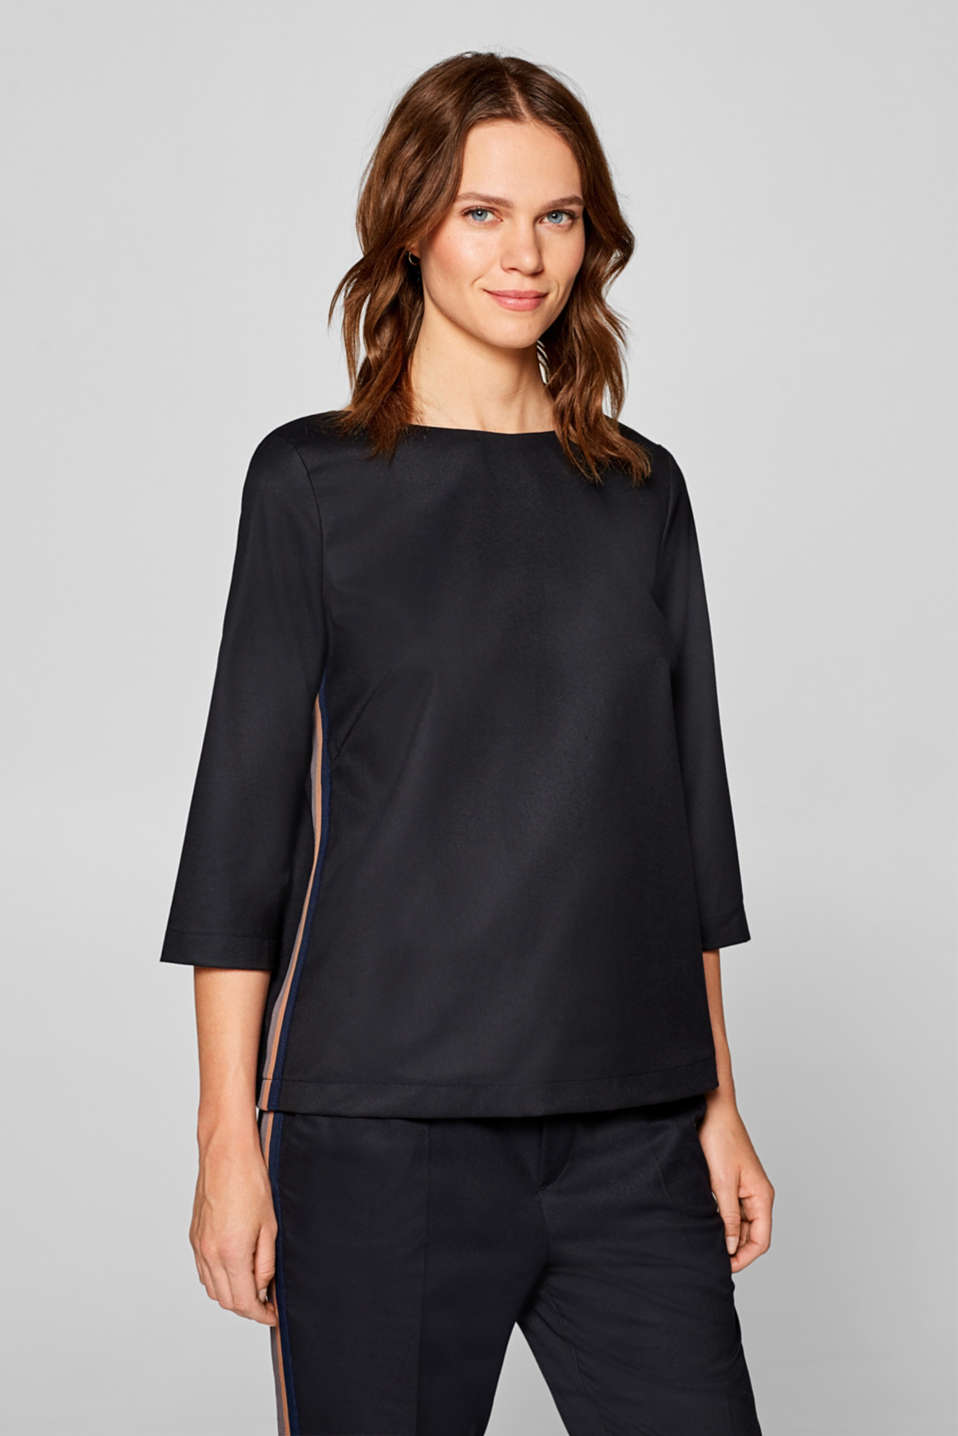 Esprit - Boxy stretch blouse with racing stripes